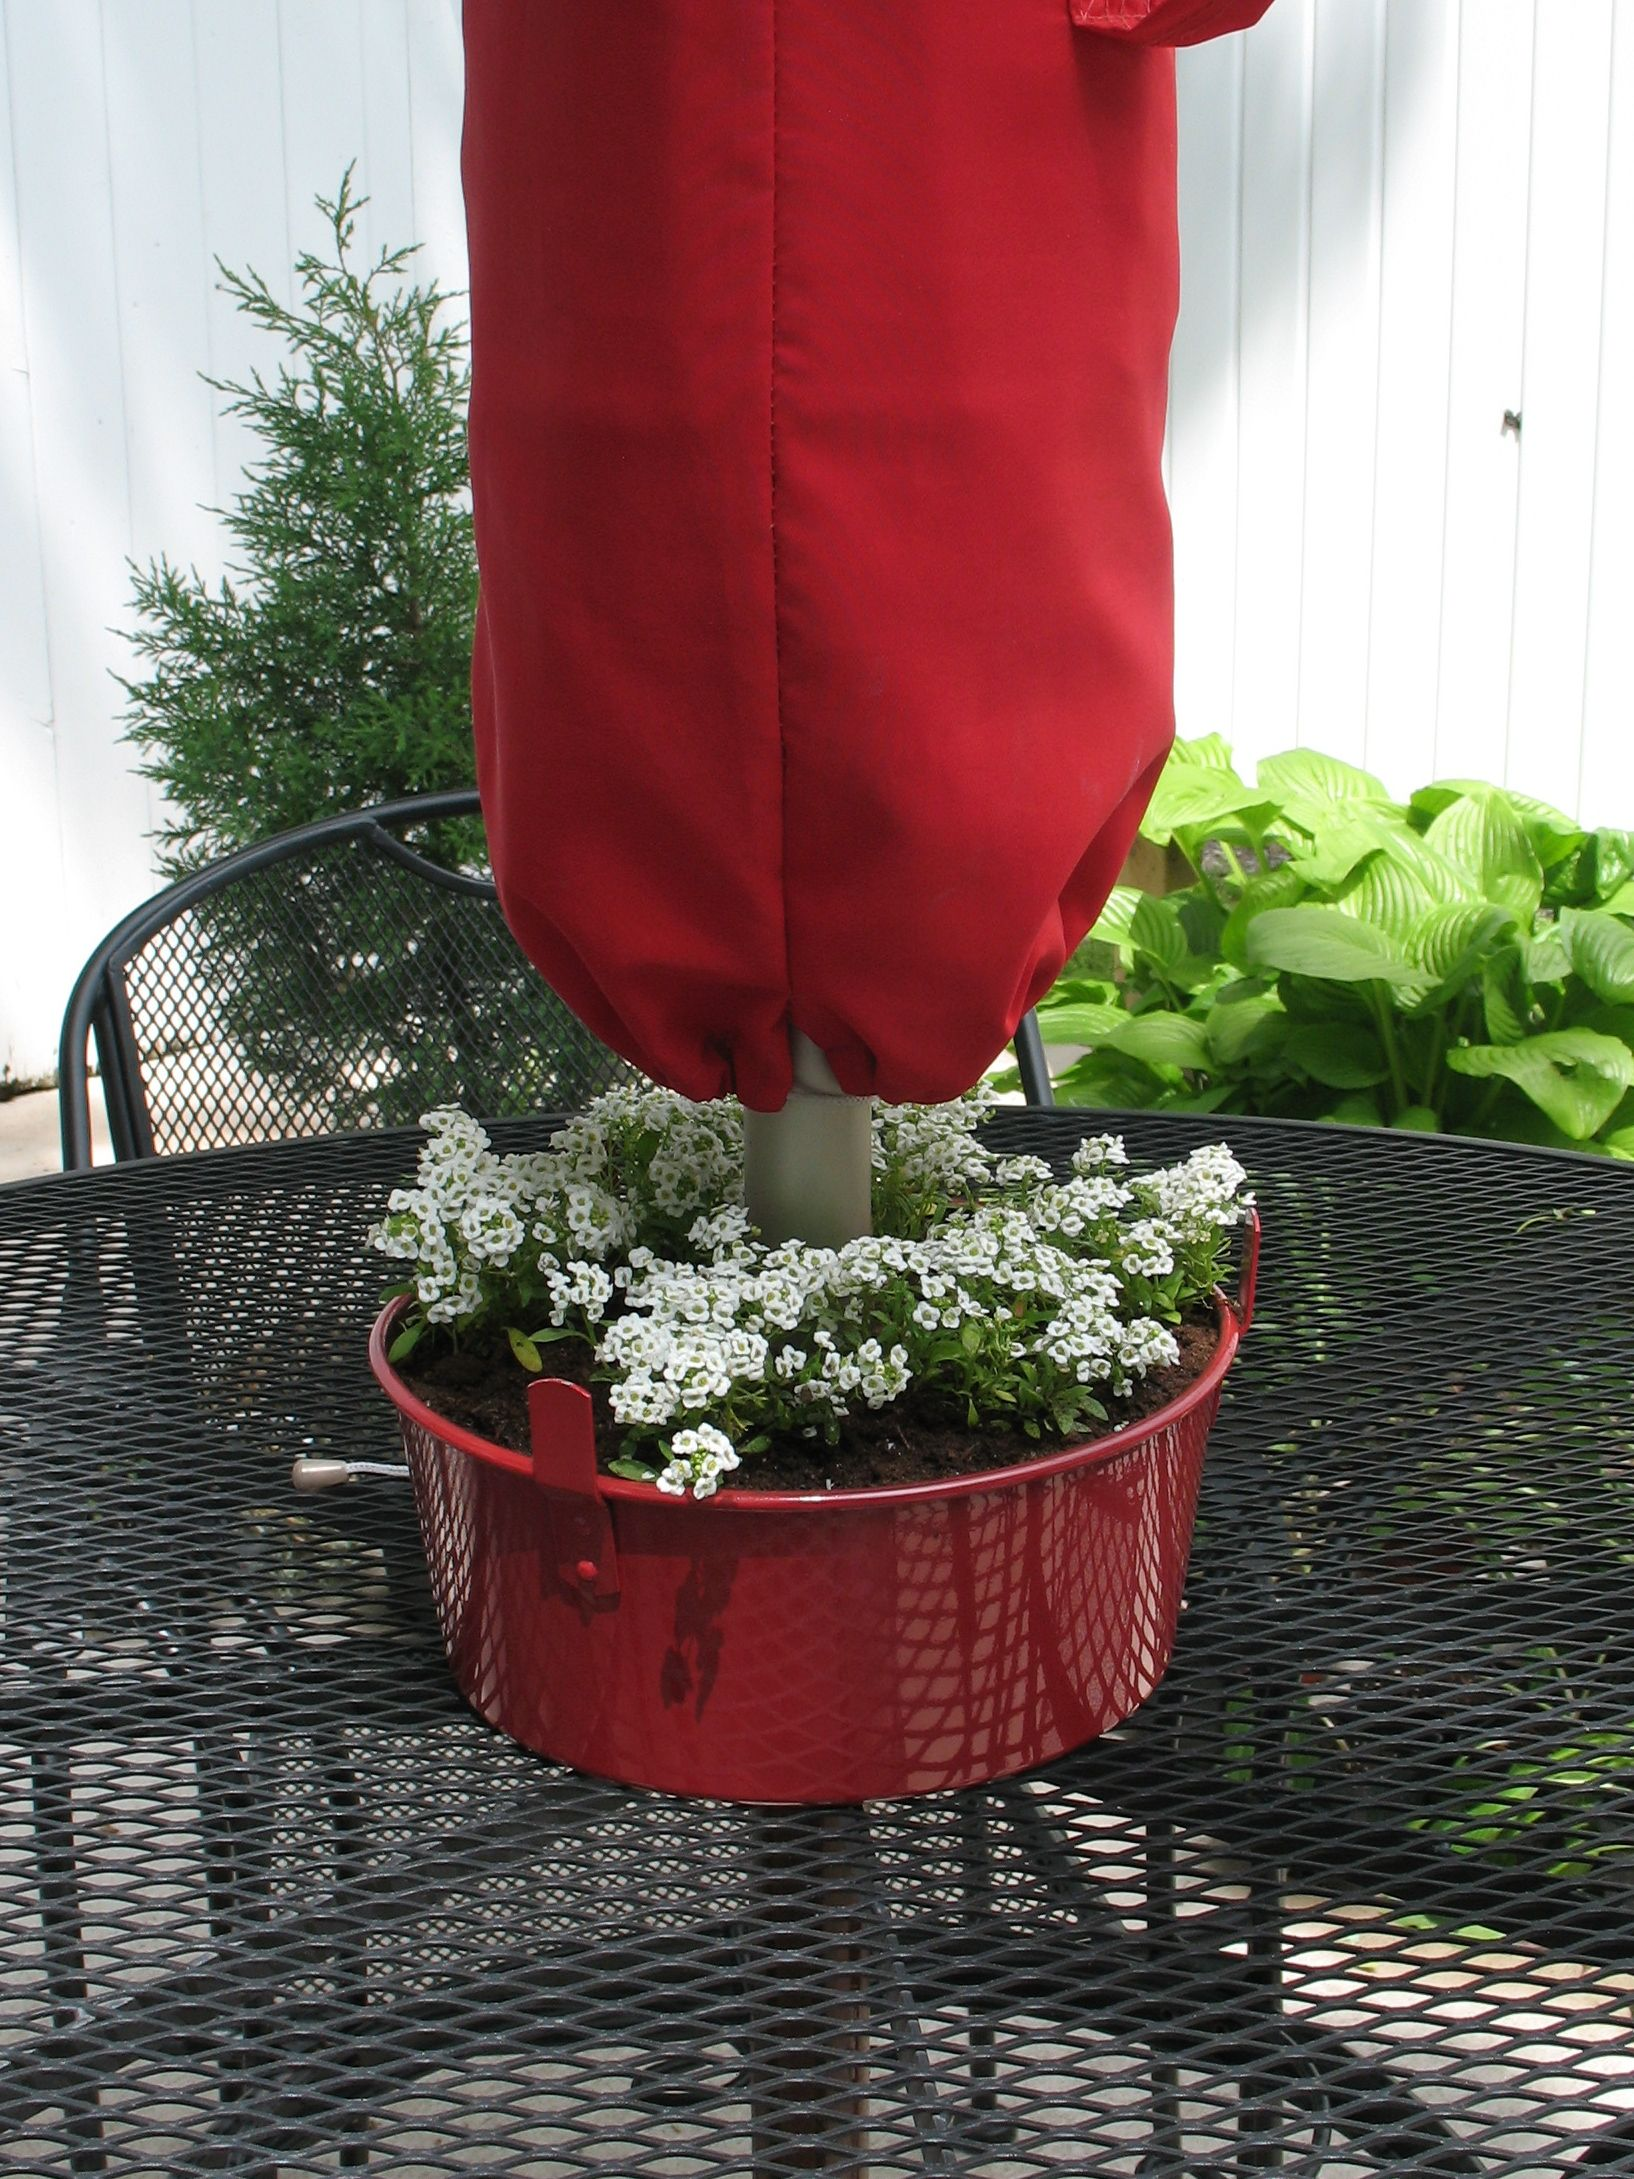 Patio tabletop planter made from an angel food cake pan. Umbrella pole fits through the hole in the center of the pan. Pan from a local thrift shop for a buck. Paint, plant, enjoy!